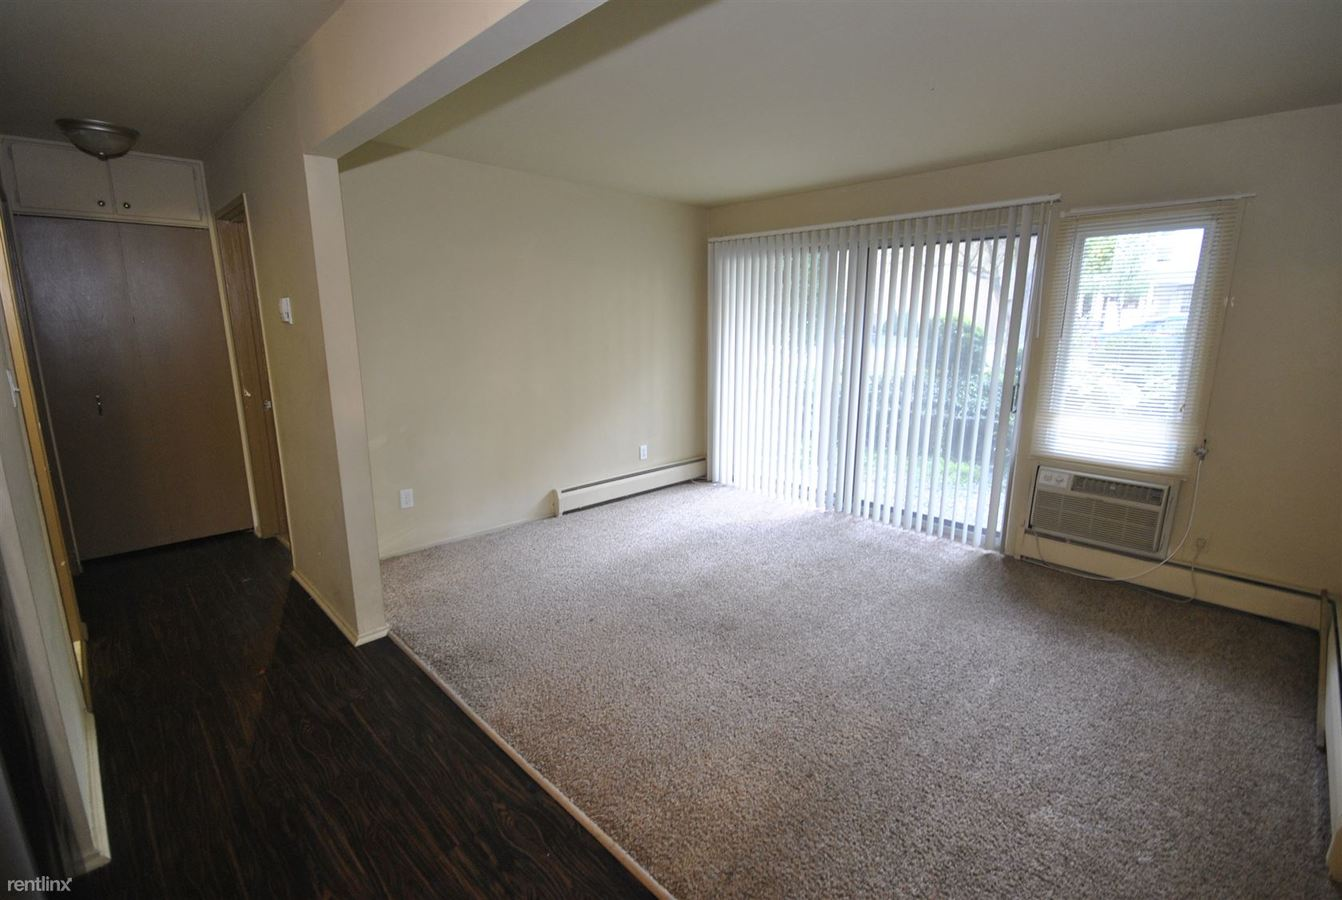 2 Bedrooms 1 Bathroom Apartment for rent at 442 3rd St in Ann Arbor, MI